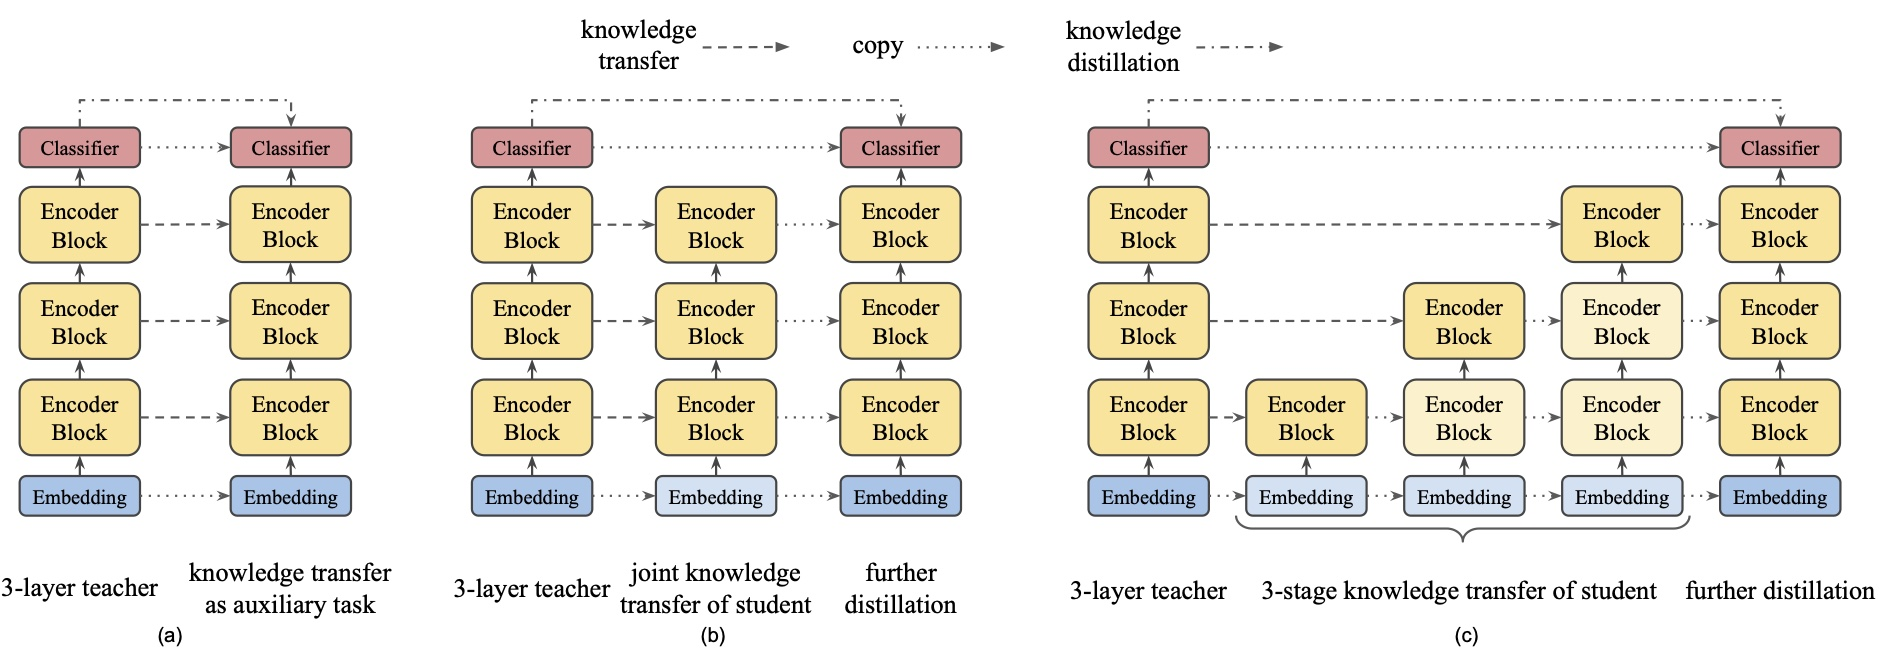 Knowledge transfer techniques. (a) Auxiliary knowledge transfer, (b) joint knowledge transfer, (c) progressive knowledge transfer. [Source](https://www.aclweb.org/anthology/2020.acl-main.195.pdf)